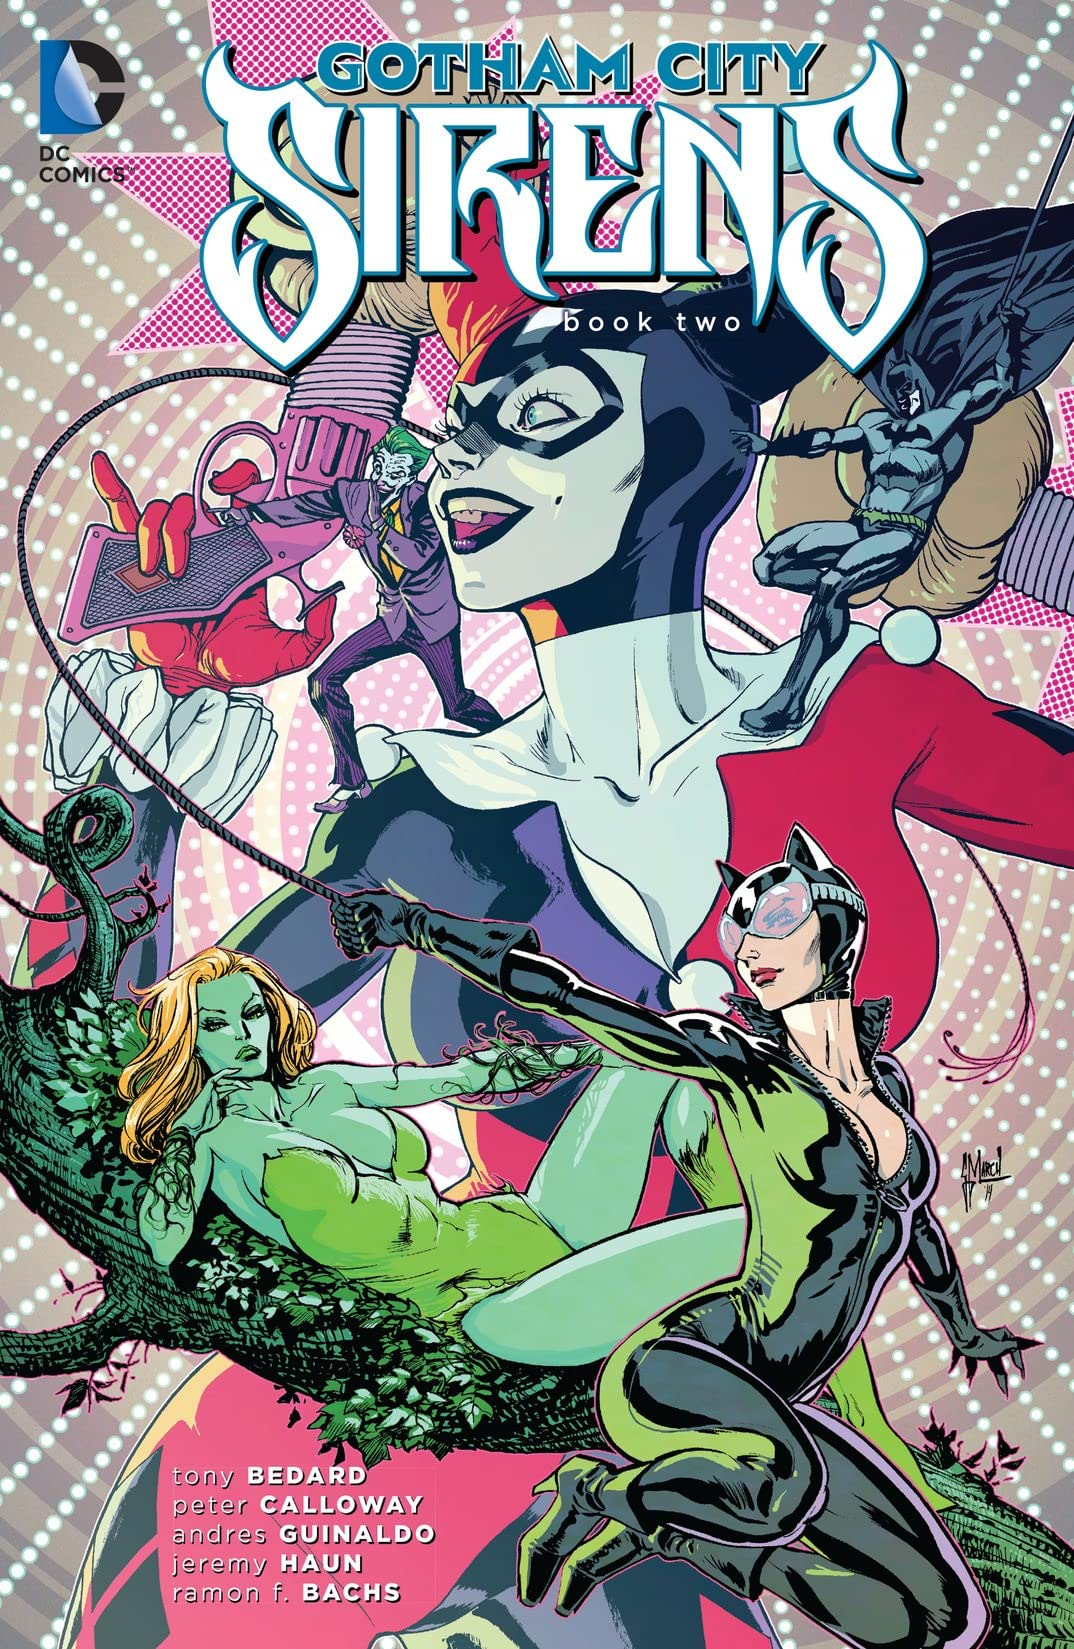 Gotham City Sirens: Book Two